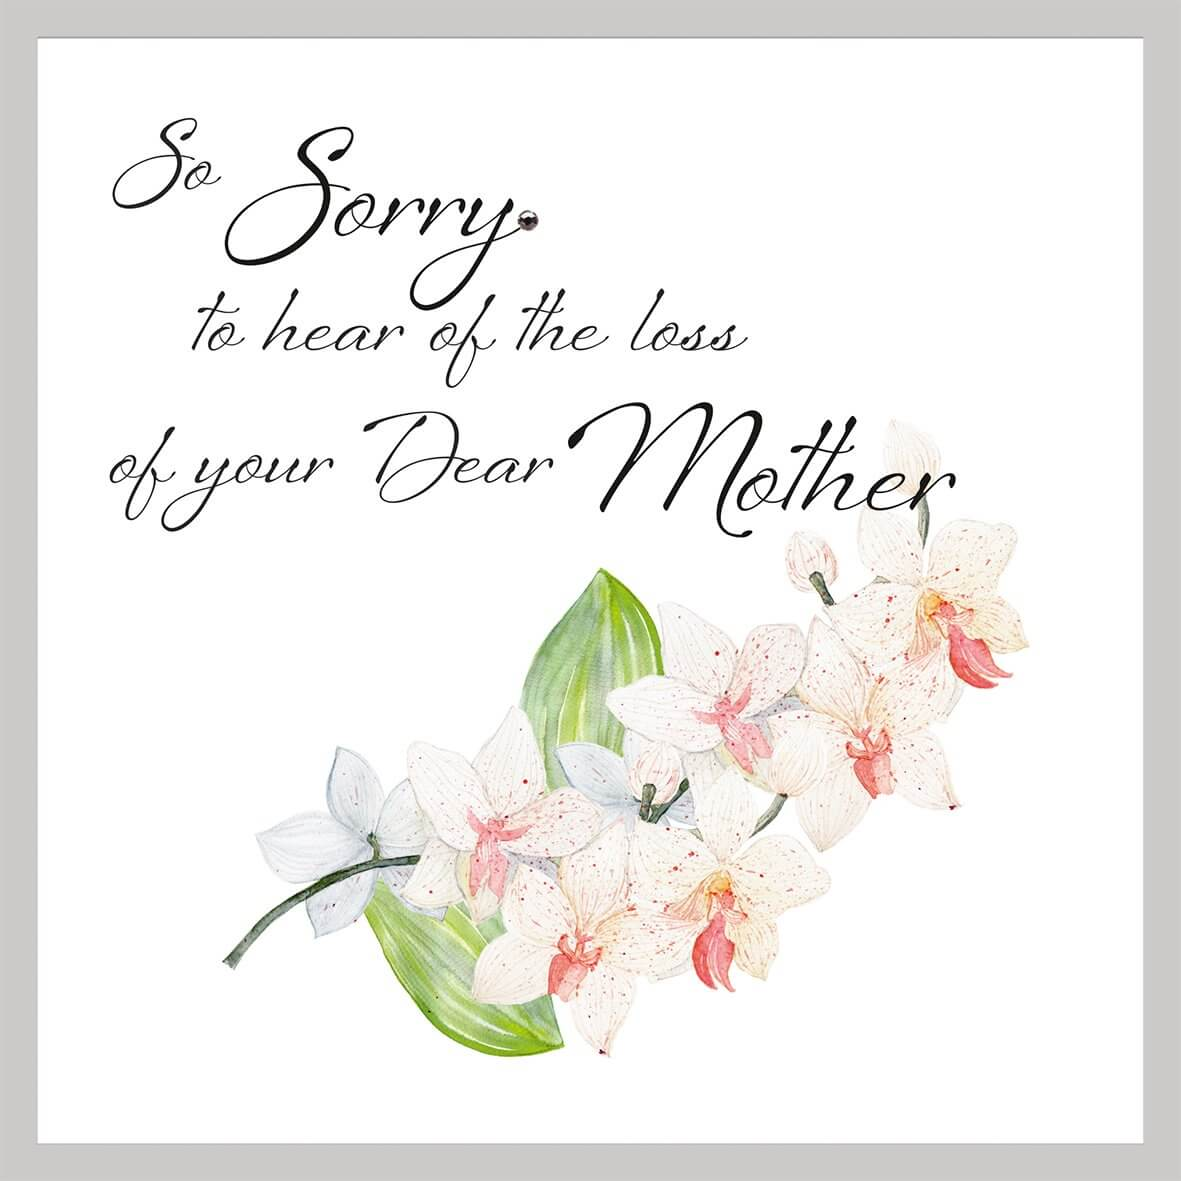 So Sorry To Hear The Loss Of Your Dear Mother